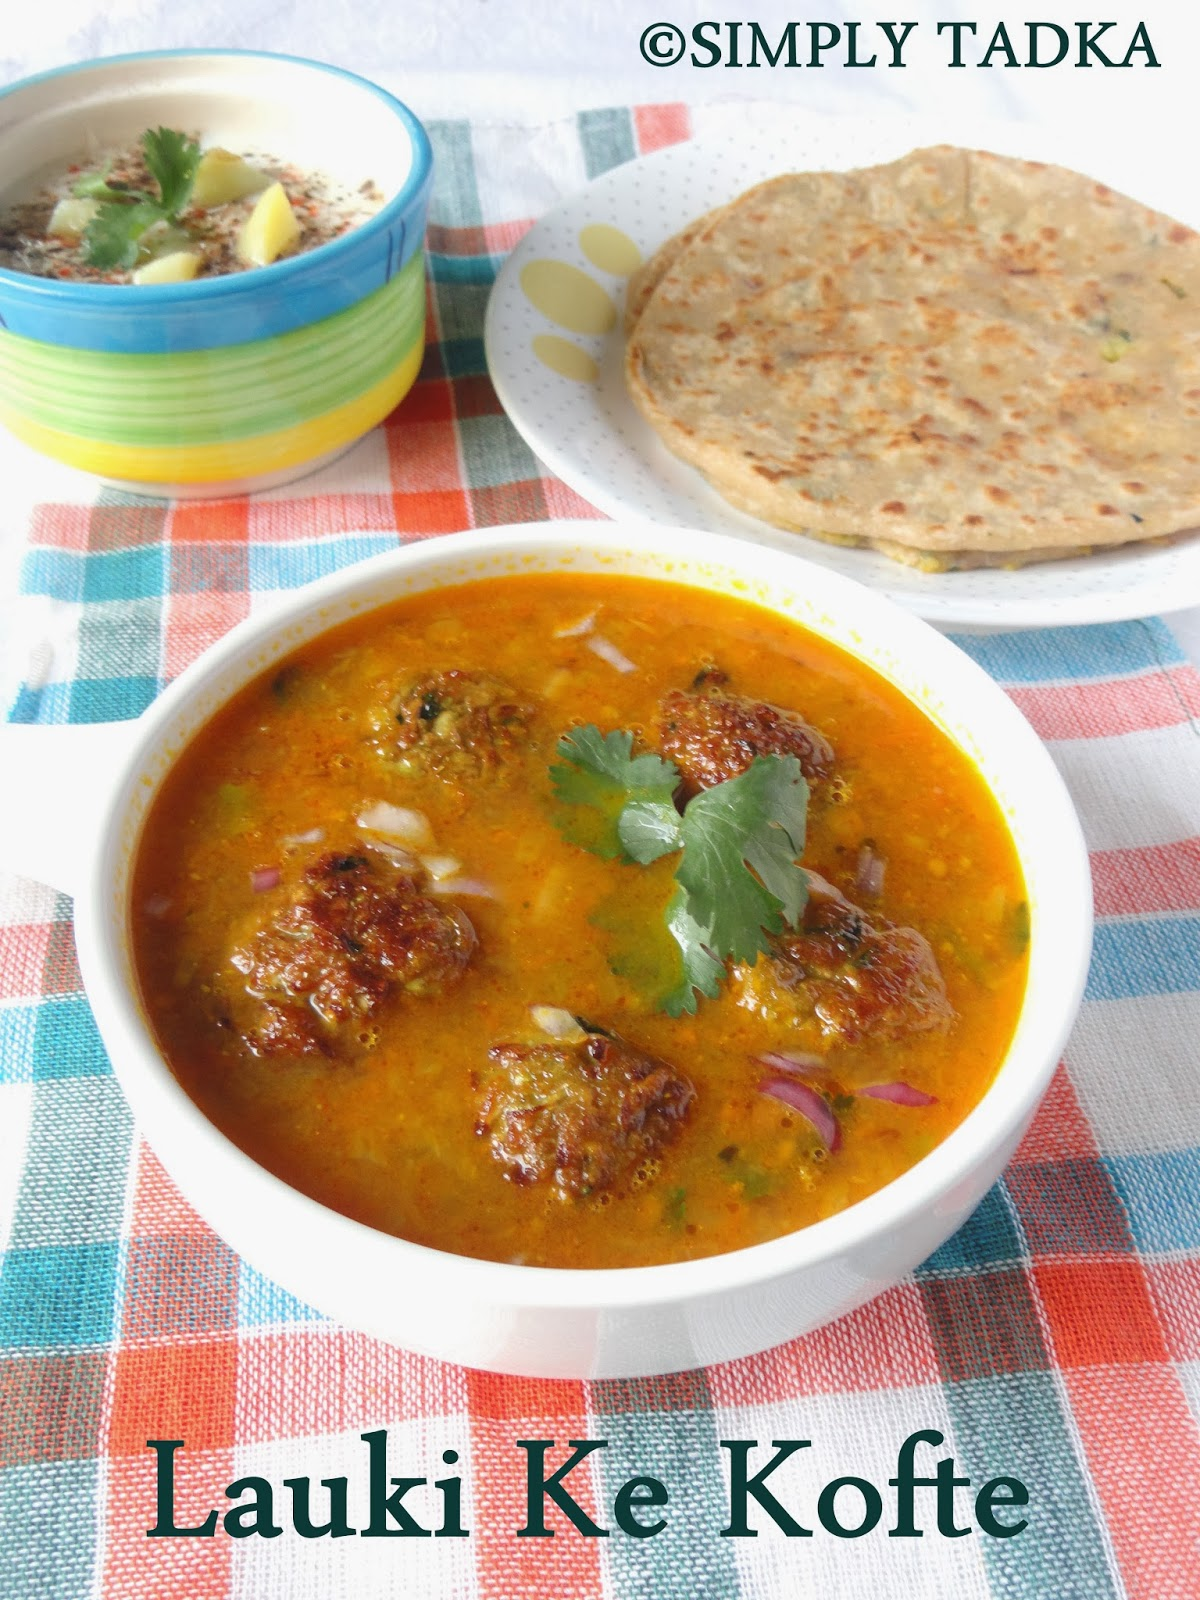 Lauki kofta recipe lauki ka kofta how to make bottle gourd kofta curry